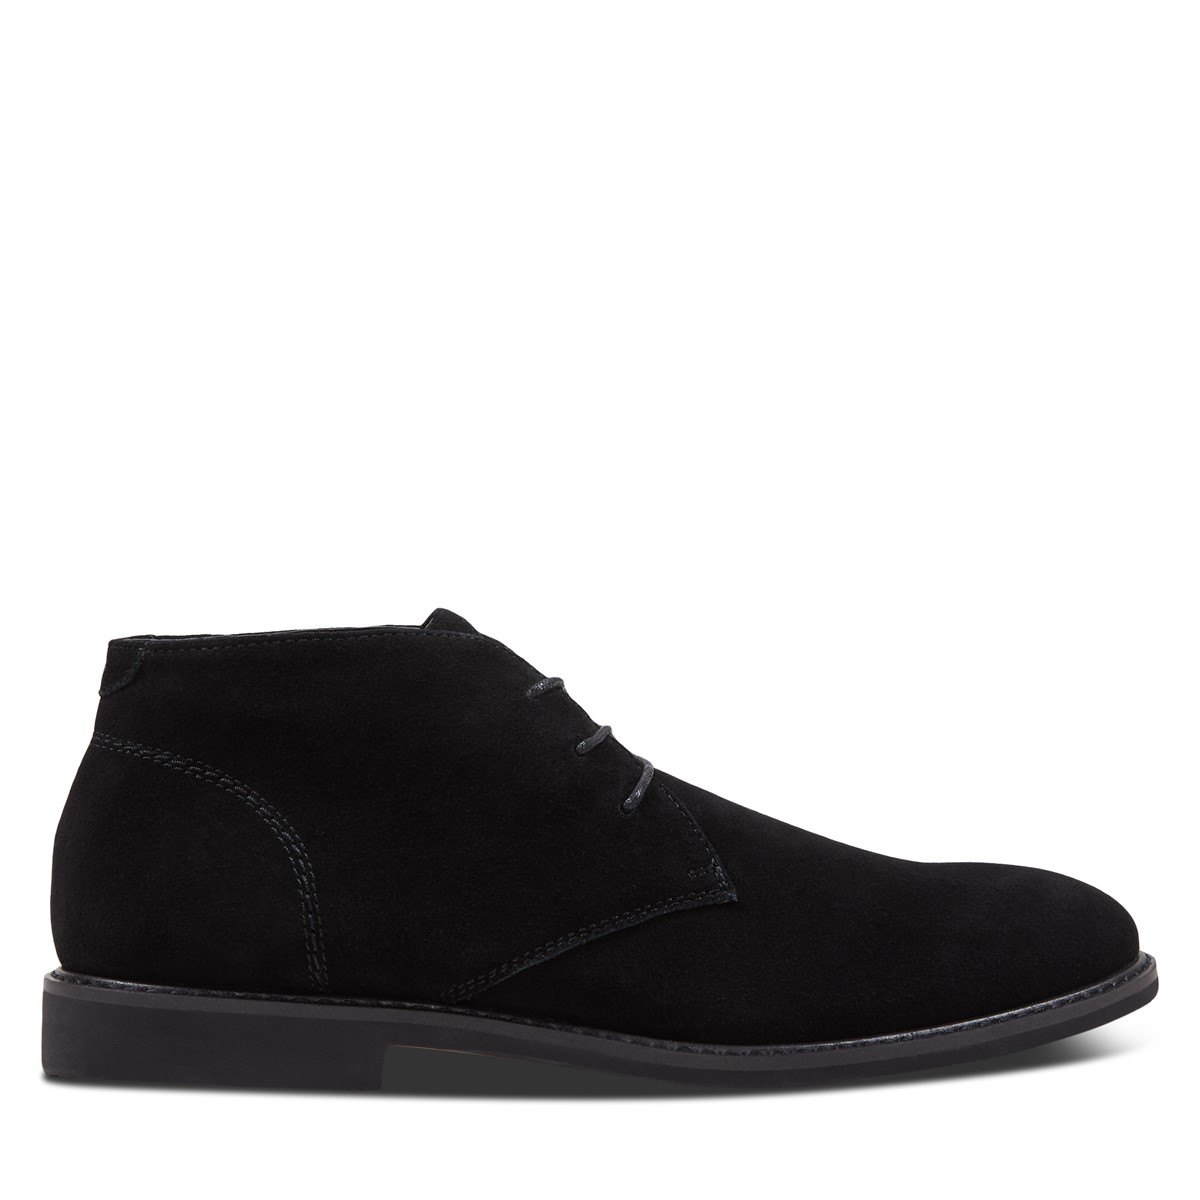 Men's Adam Boots in Black